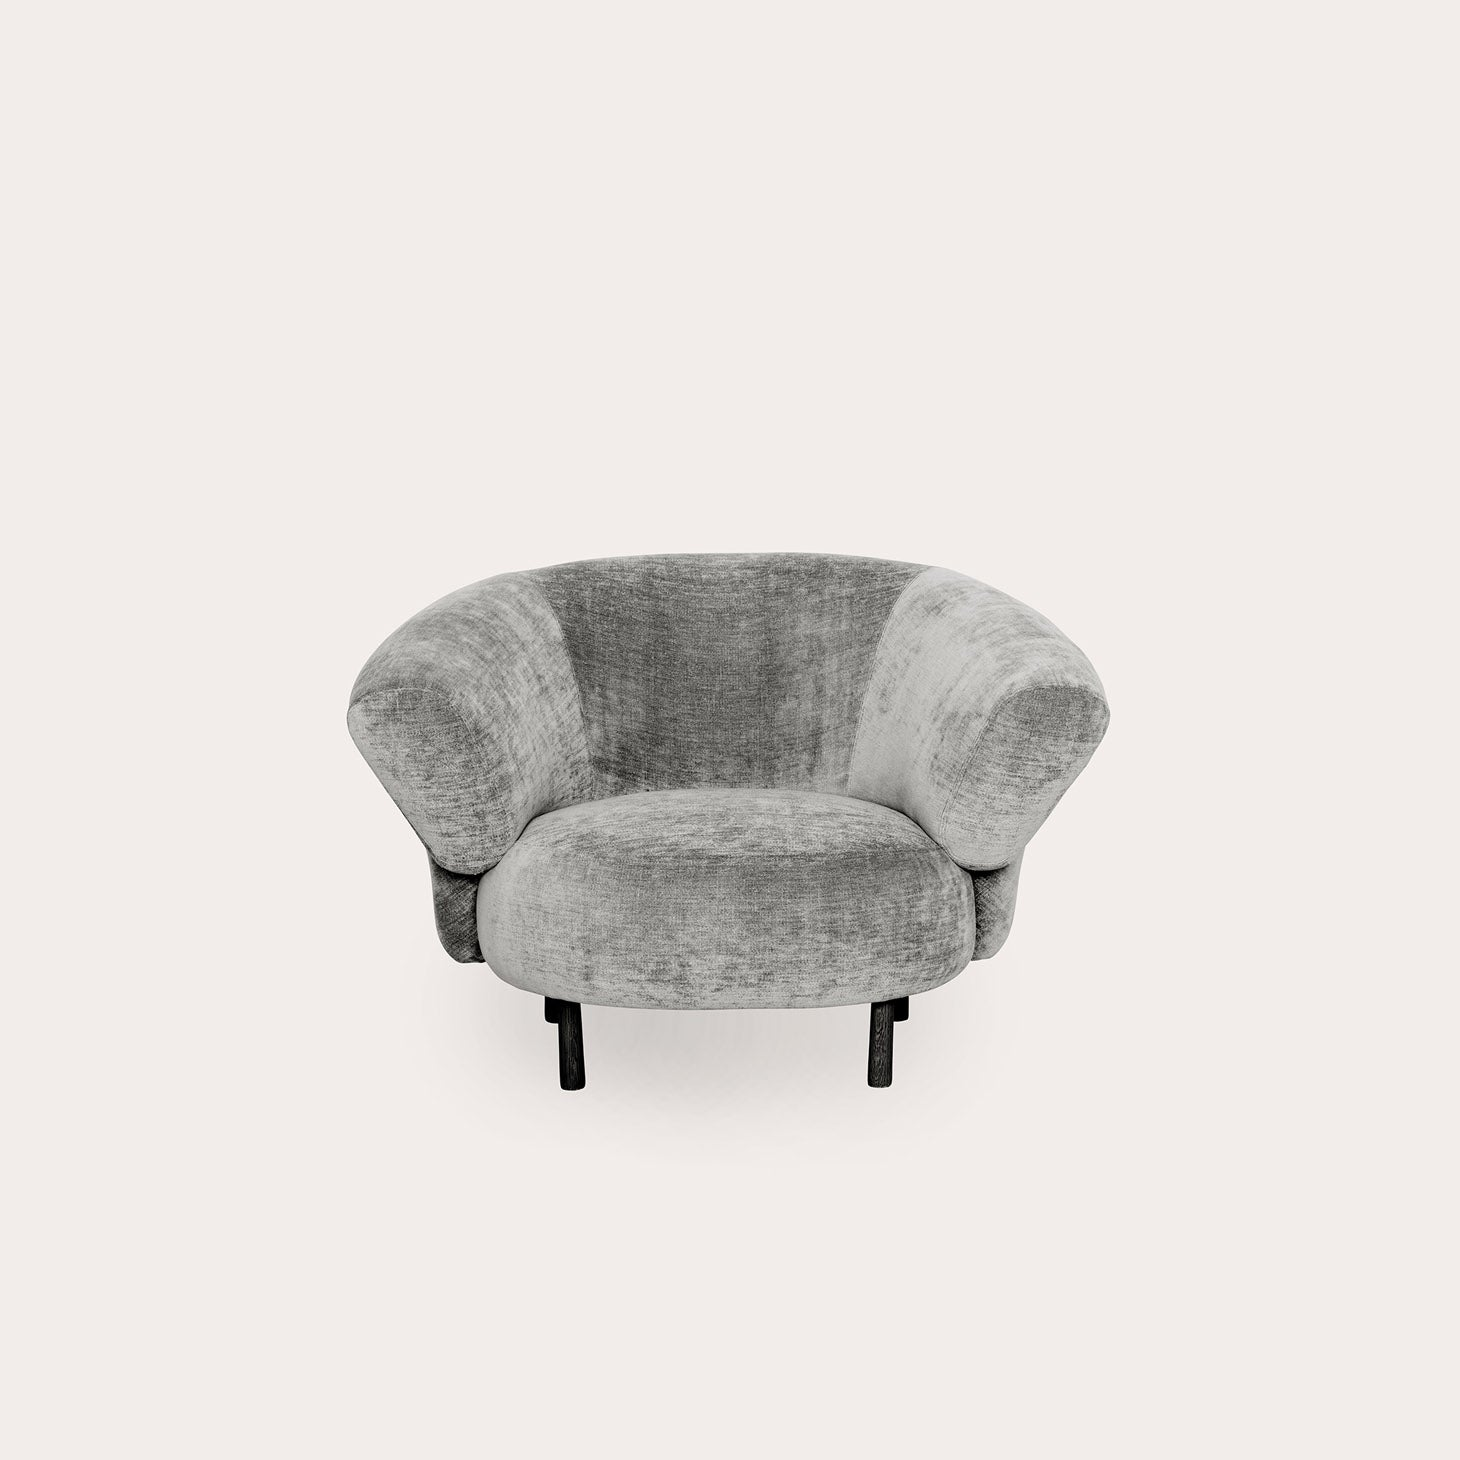 ANA Seating Christophe Delcourt Designer Furniture Sku: 008-240-10124